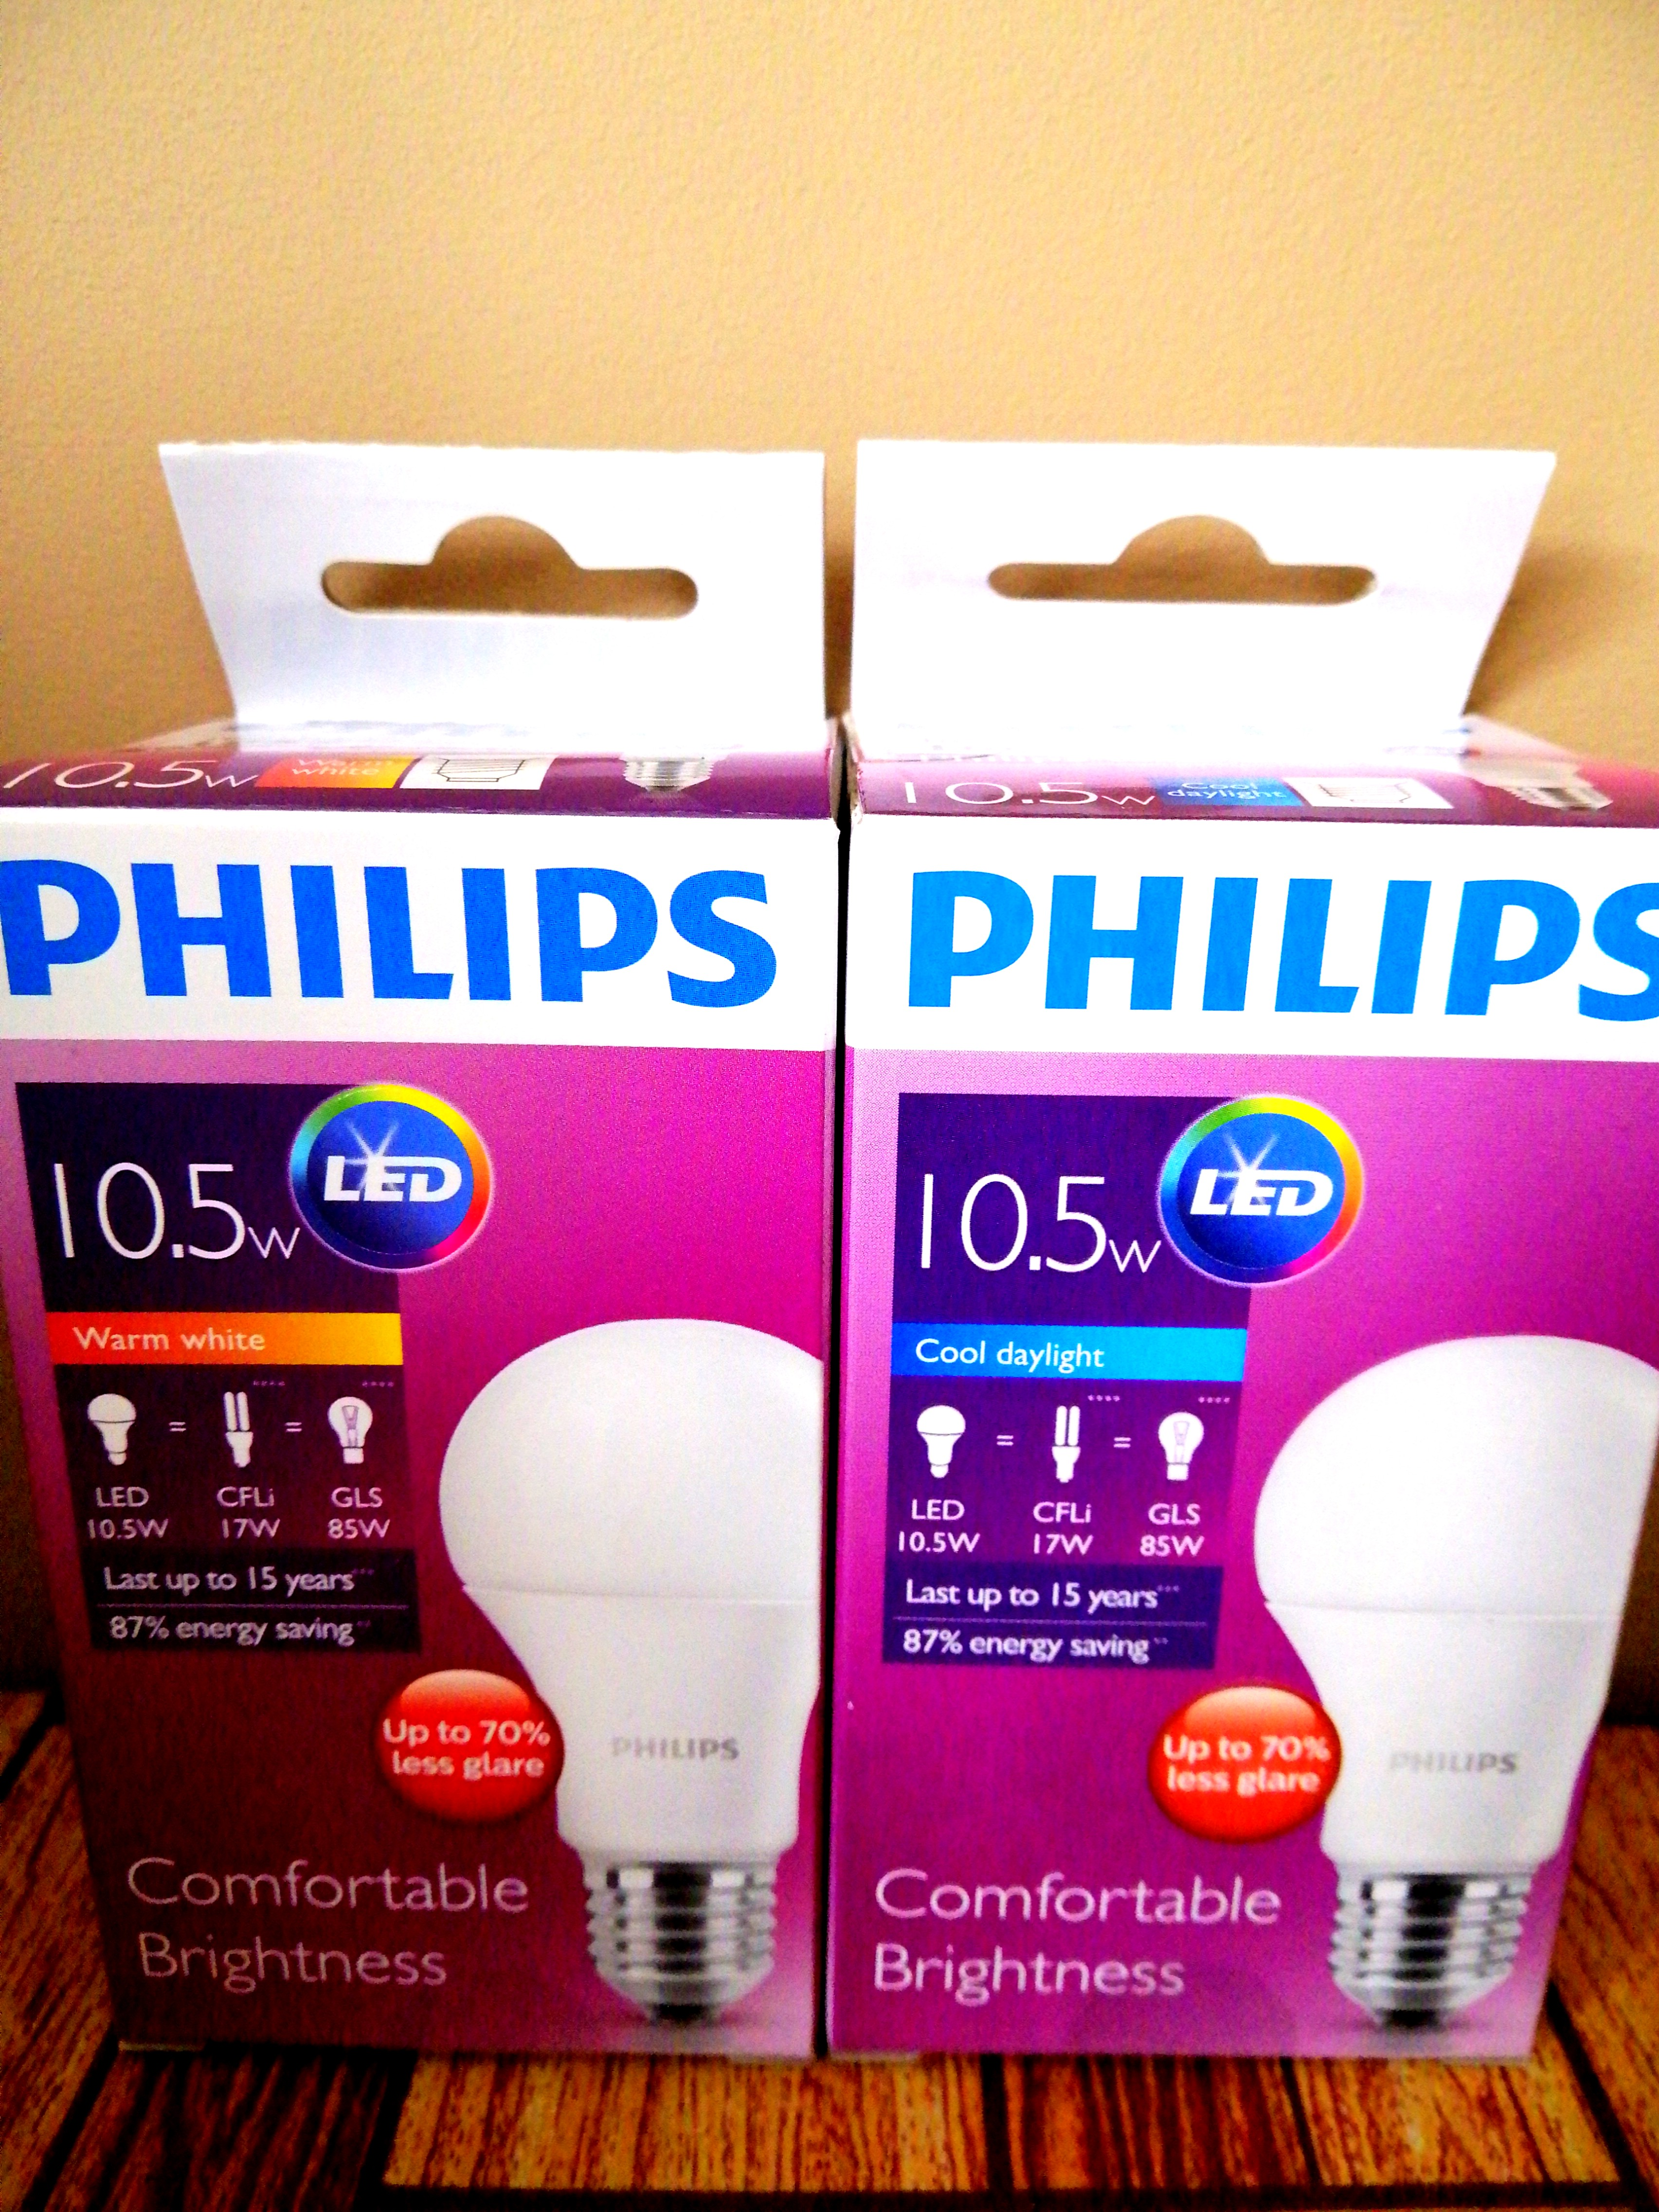 c3ddd7b85be Brand New  Philips 10.5W LED Bulb (Warm White Cool Daylight ...